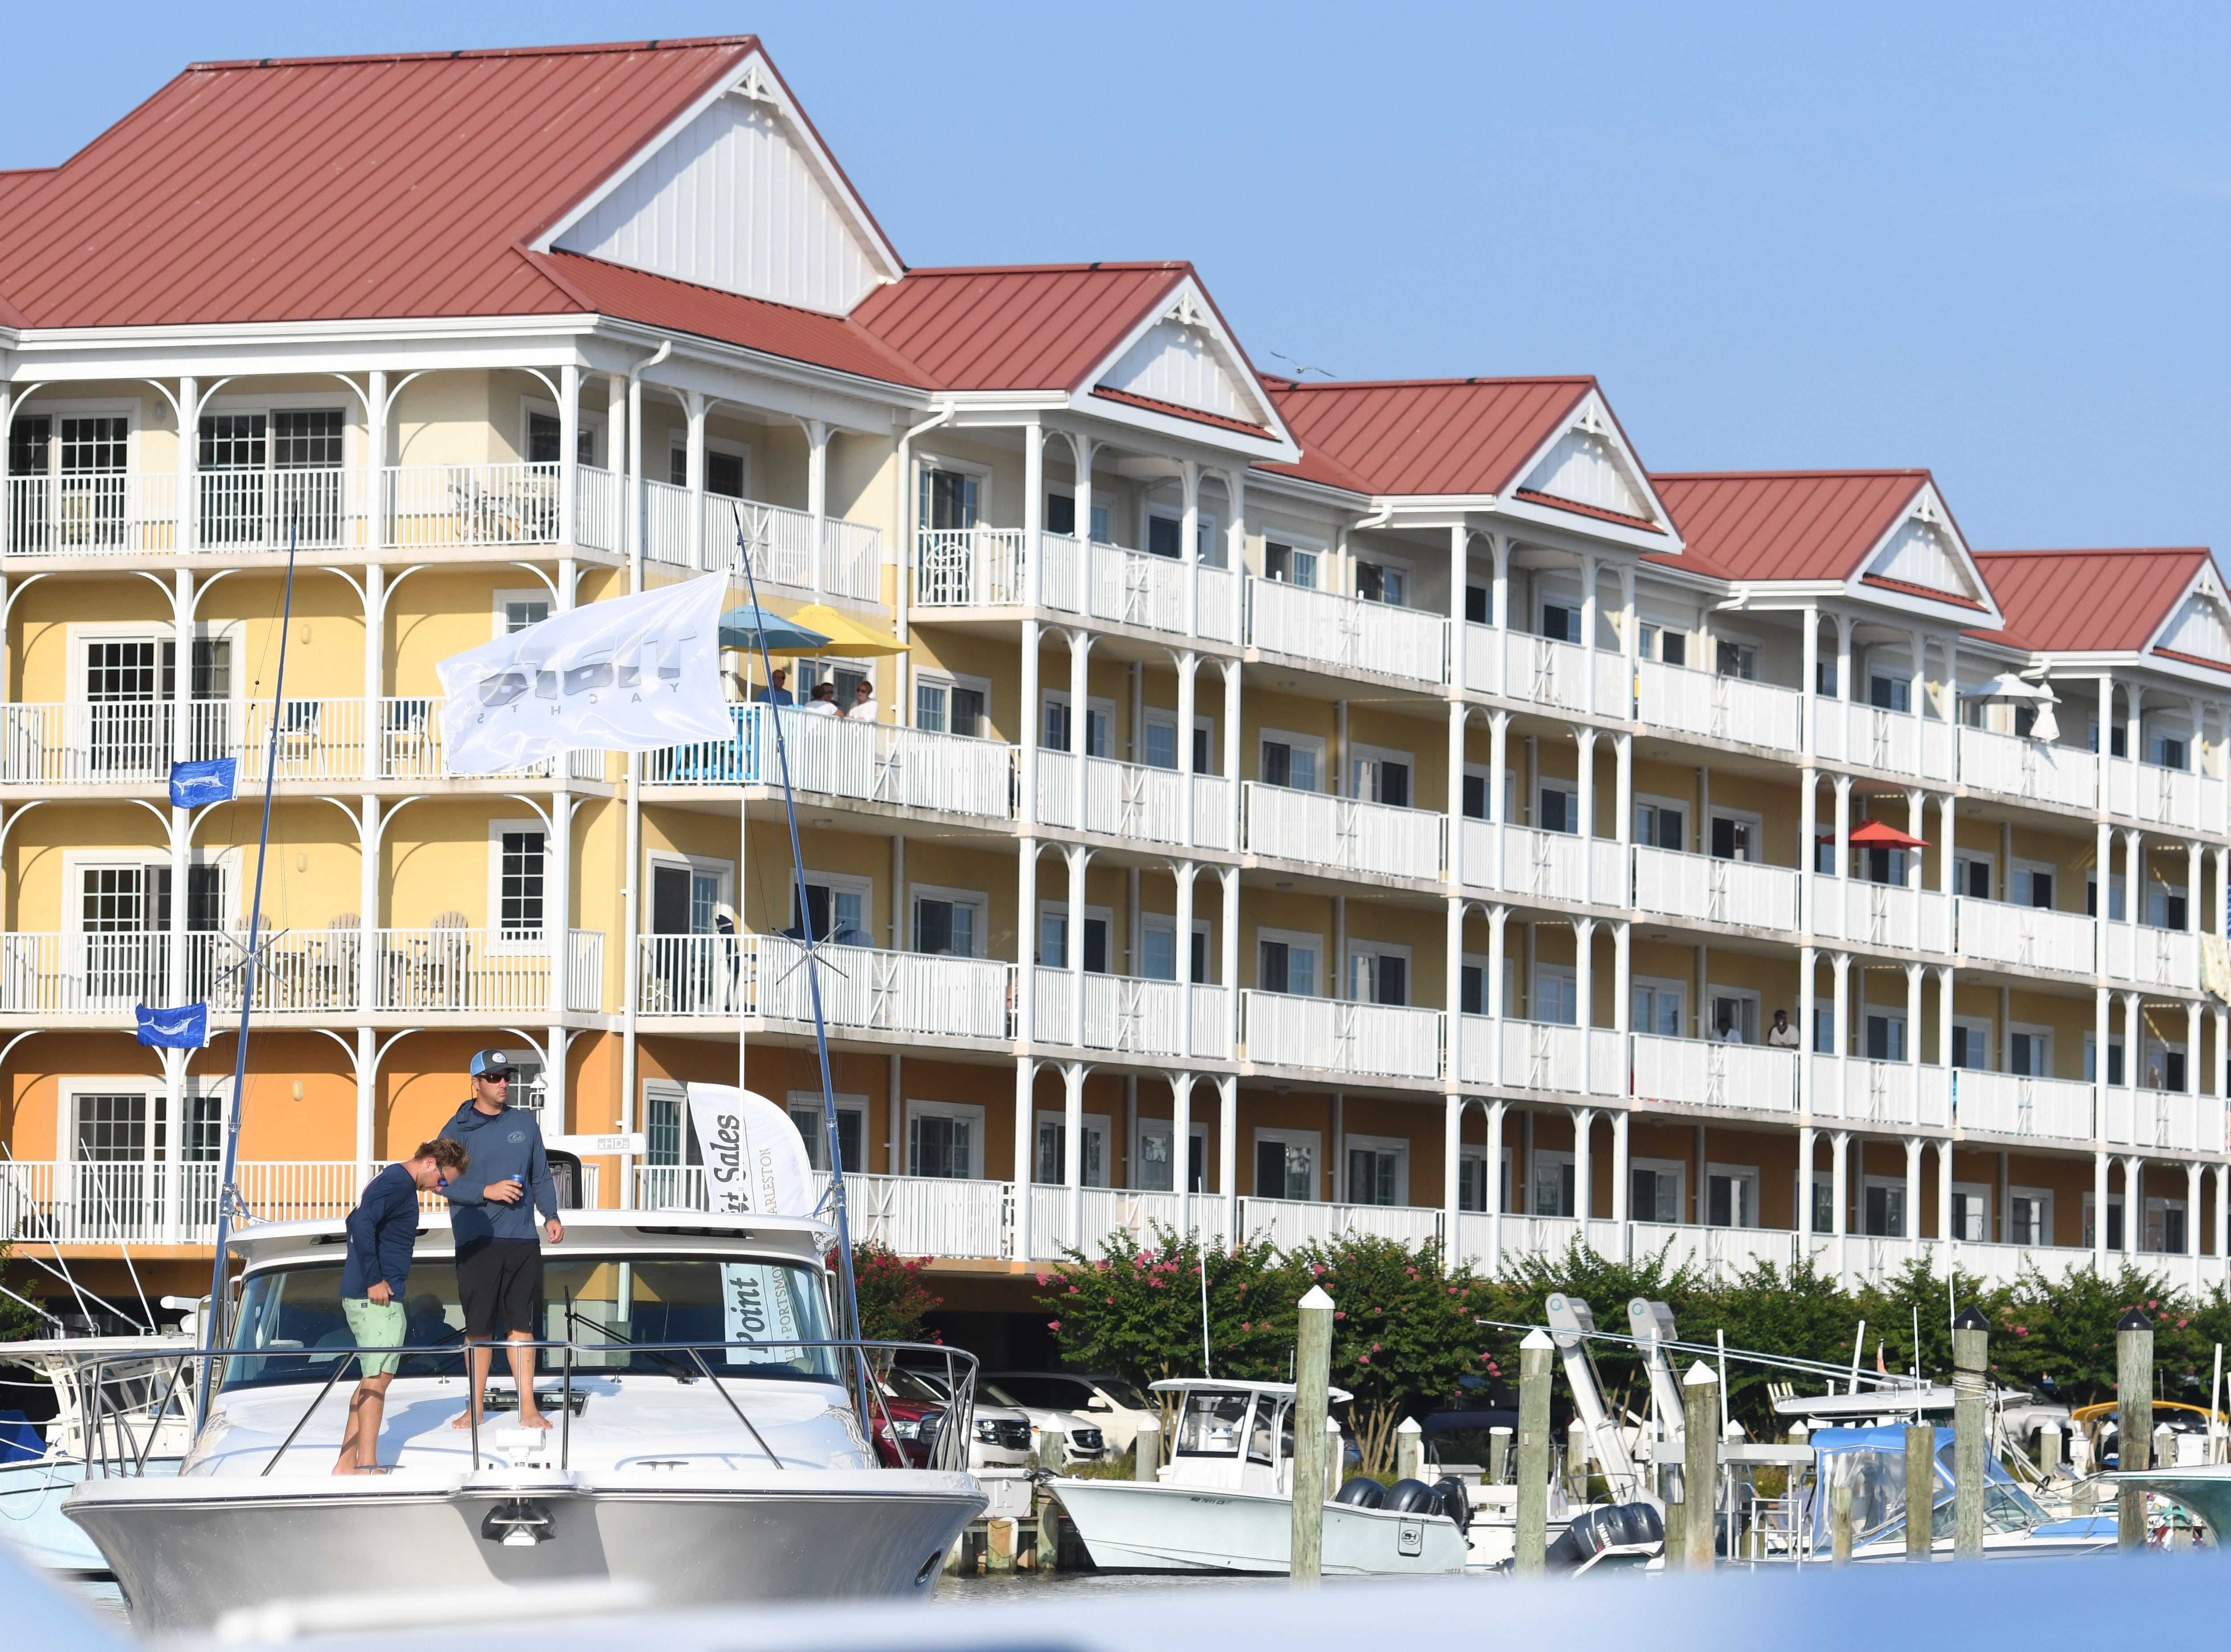 The first day of the 45th Annual White Marlin Open in Ocean City, Md. on  Monday, August 6, 2018.